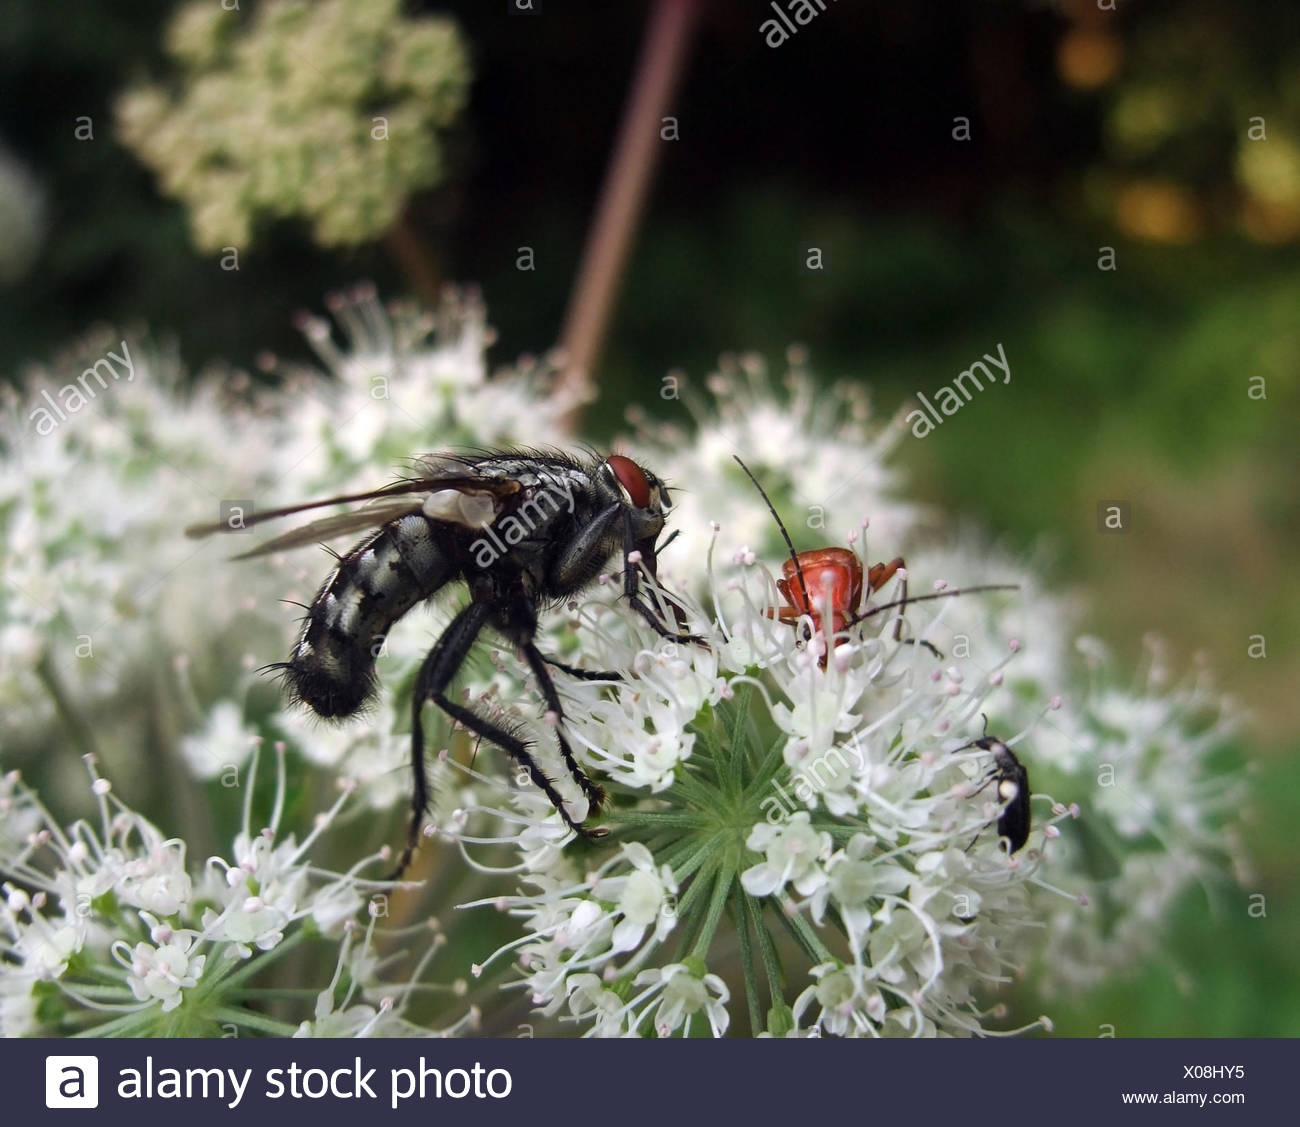 sideways shot of a flesh-fly and some beetles on white flower - Stock Image